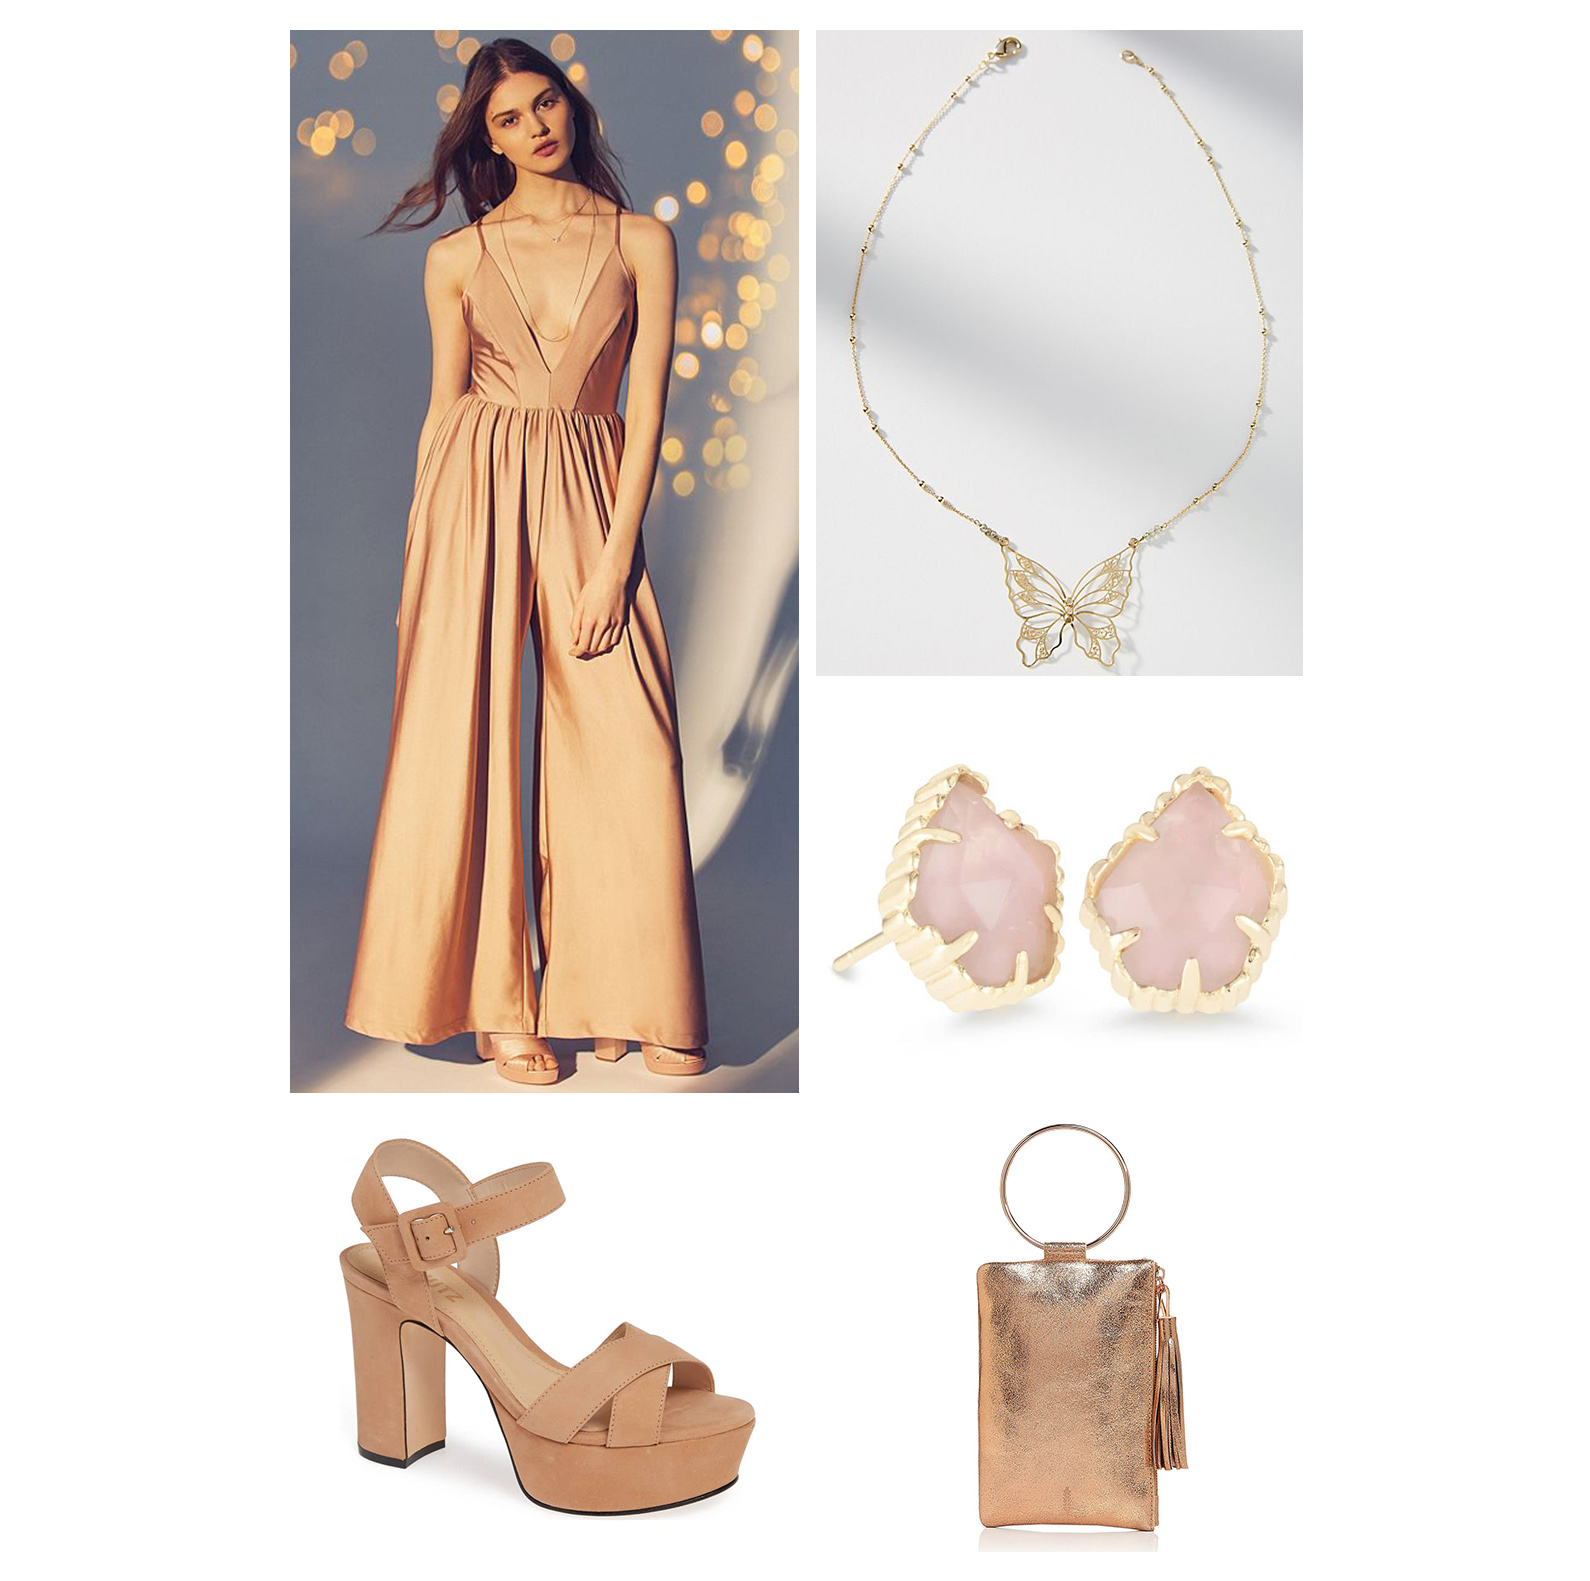 fall-autumn-outfit-dinner-2018-fashion-ideas-gold-tan-jumpsuit-wideleg-platform-heel-sandals-butterfly-necklace-stone-stud-earrings-clutch-monochromatic-dressy-date-night-out.jpg